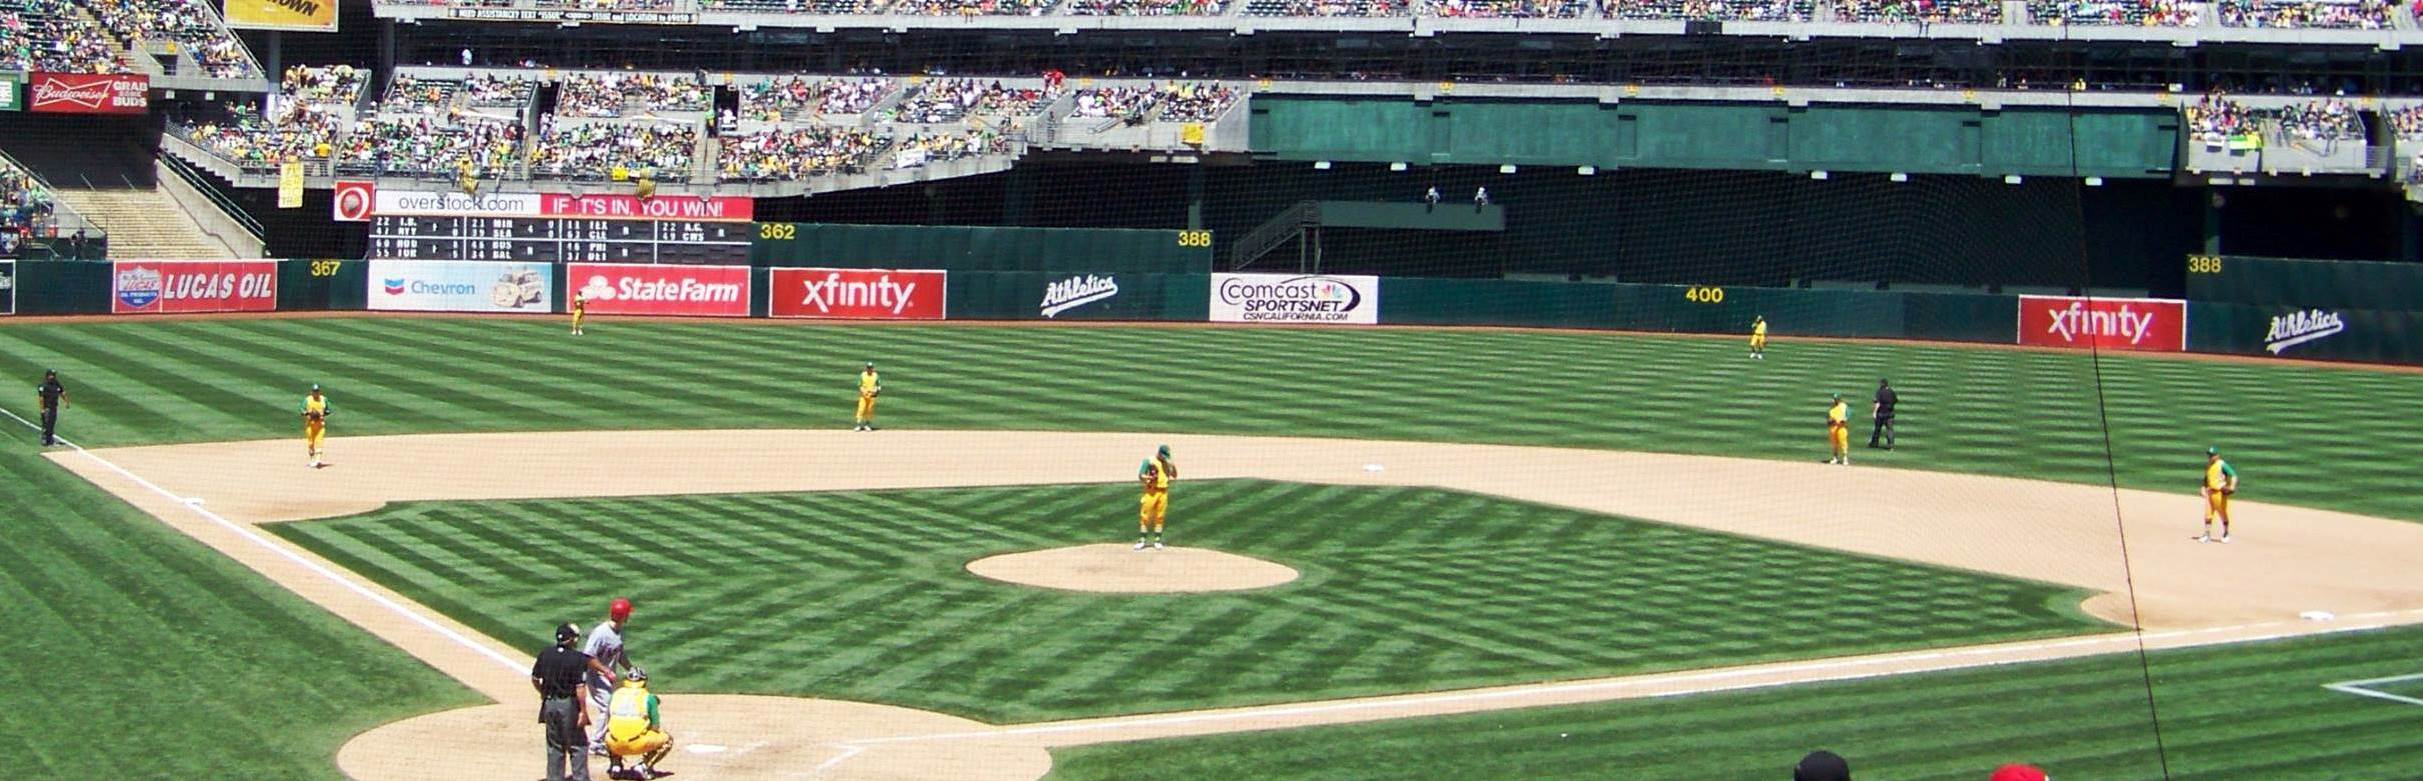 Since the 1996 renovations, gone are the splendid views of the Oakland Hills, replaced with the god-ugly and unusable Mount Davis structure in the outfield and fan-friendly bleachers PHOTO RICHARD PALOMA